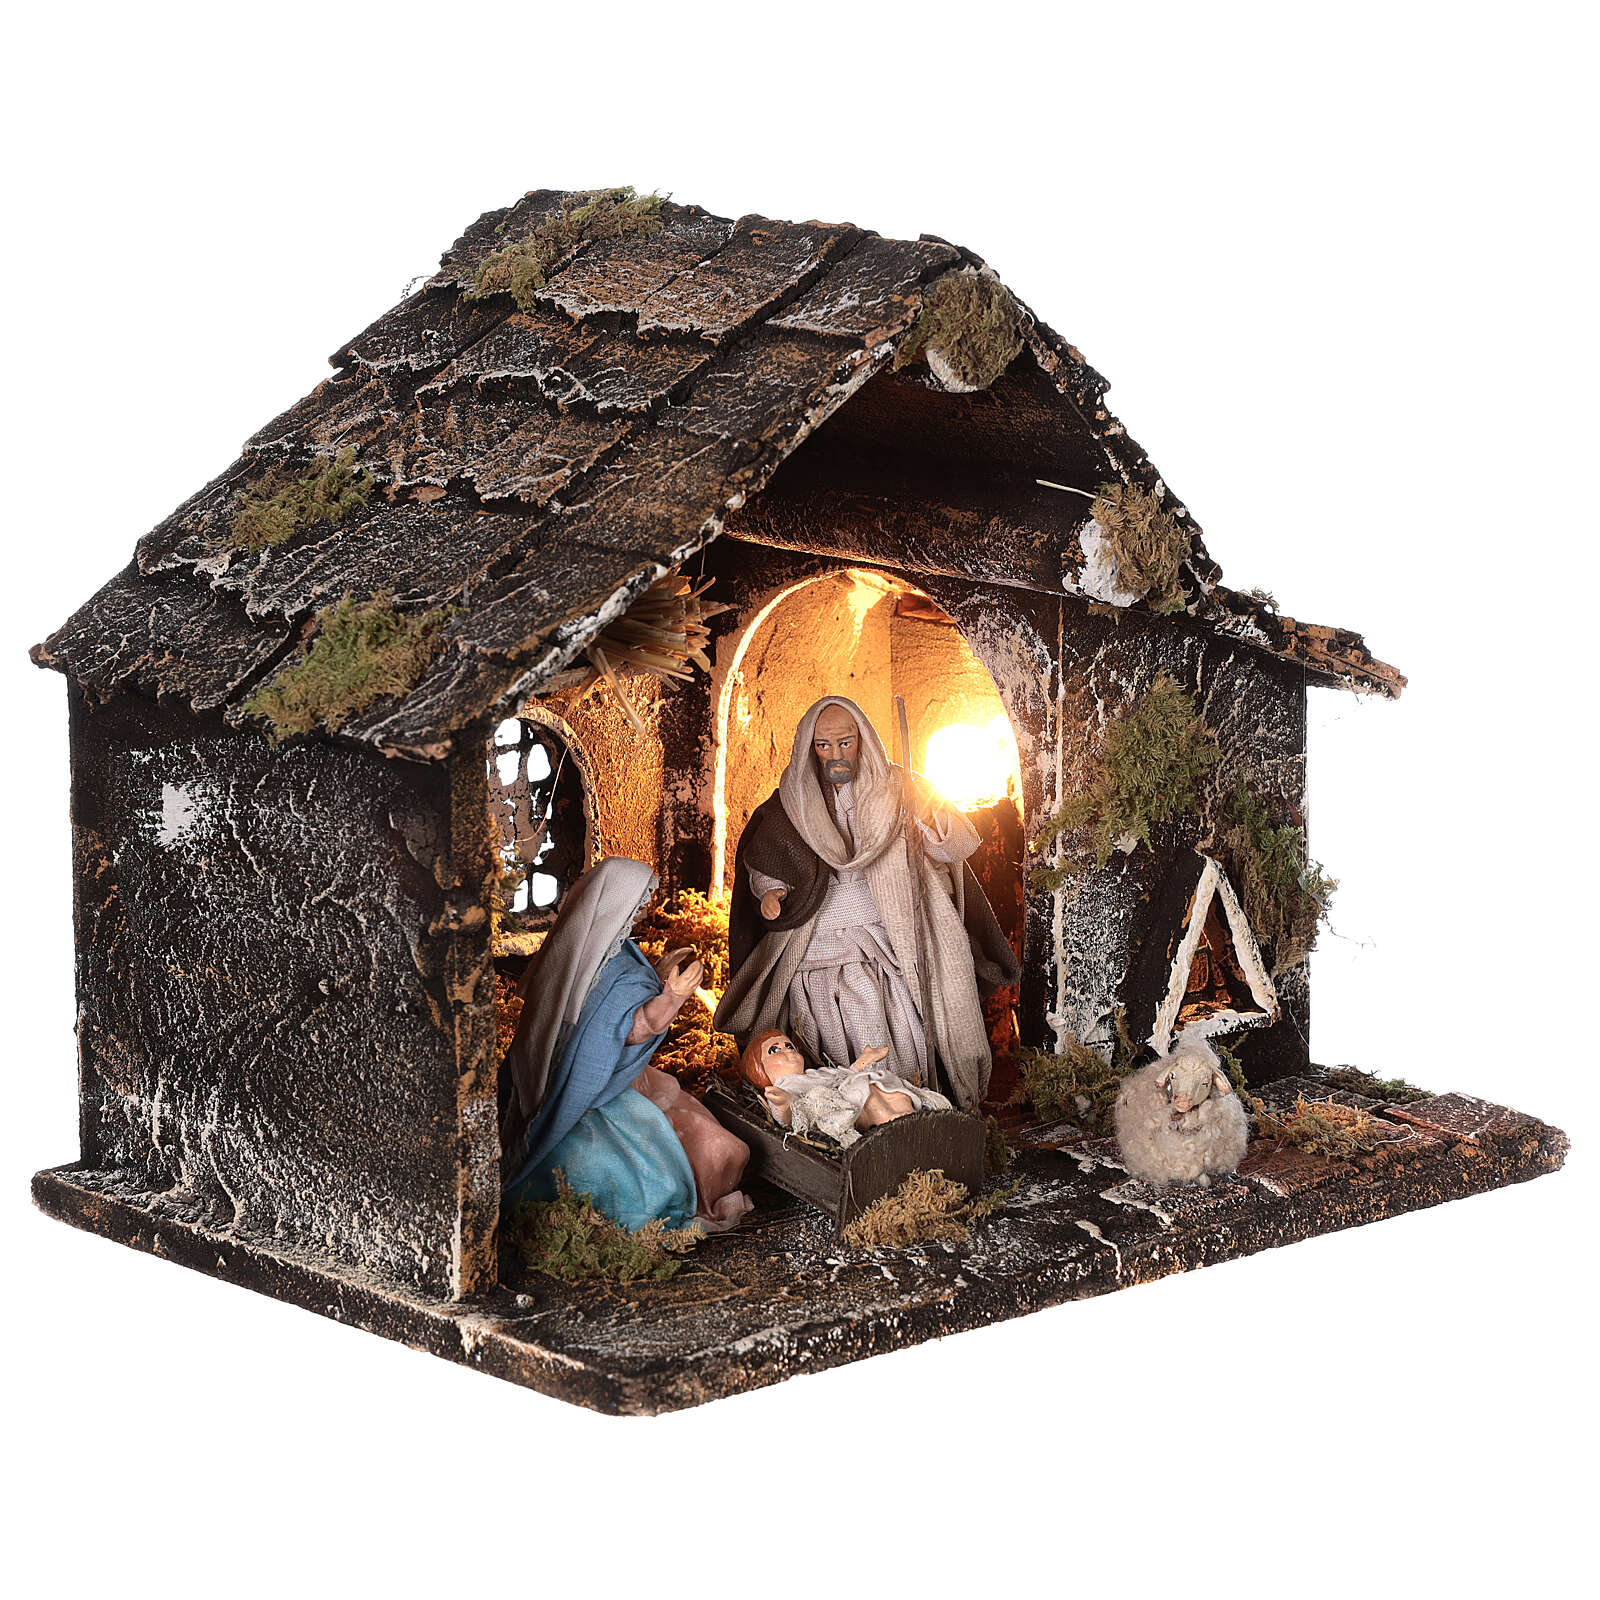 Stable for Neapolitan Nativity Scene with terracotta figurines of 12 cm high 25x30x20 cm 4